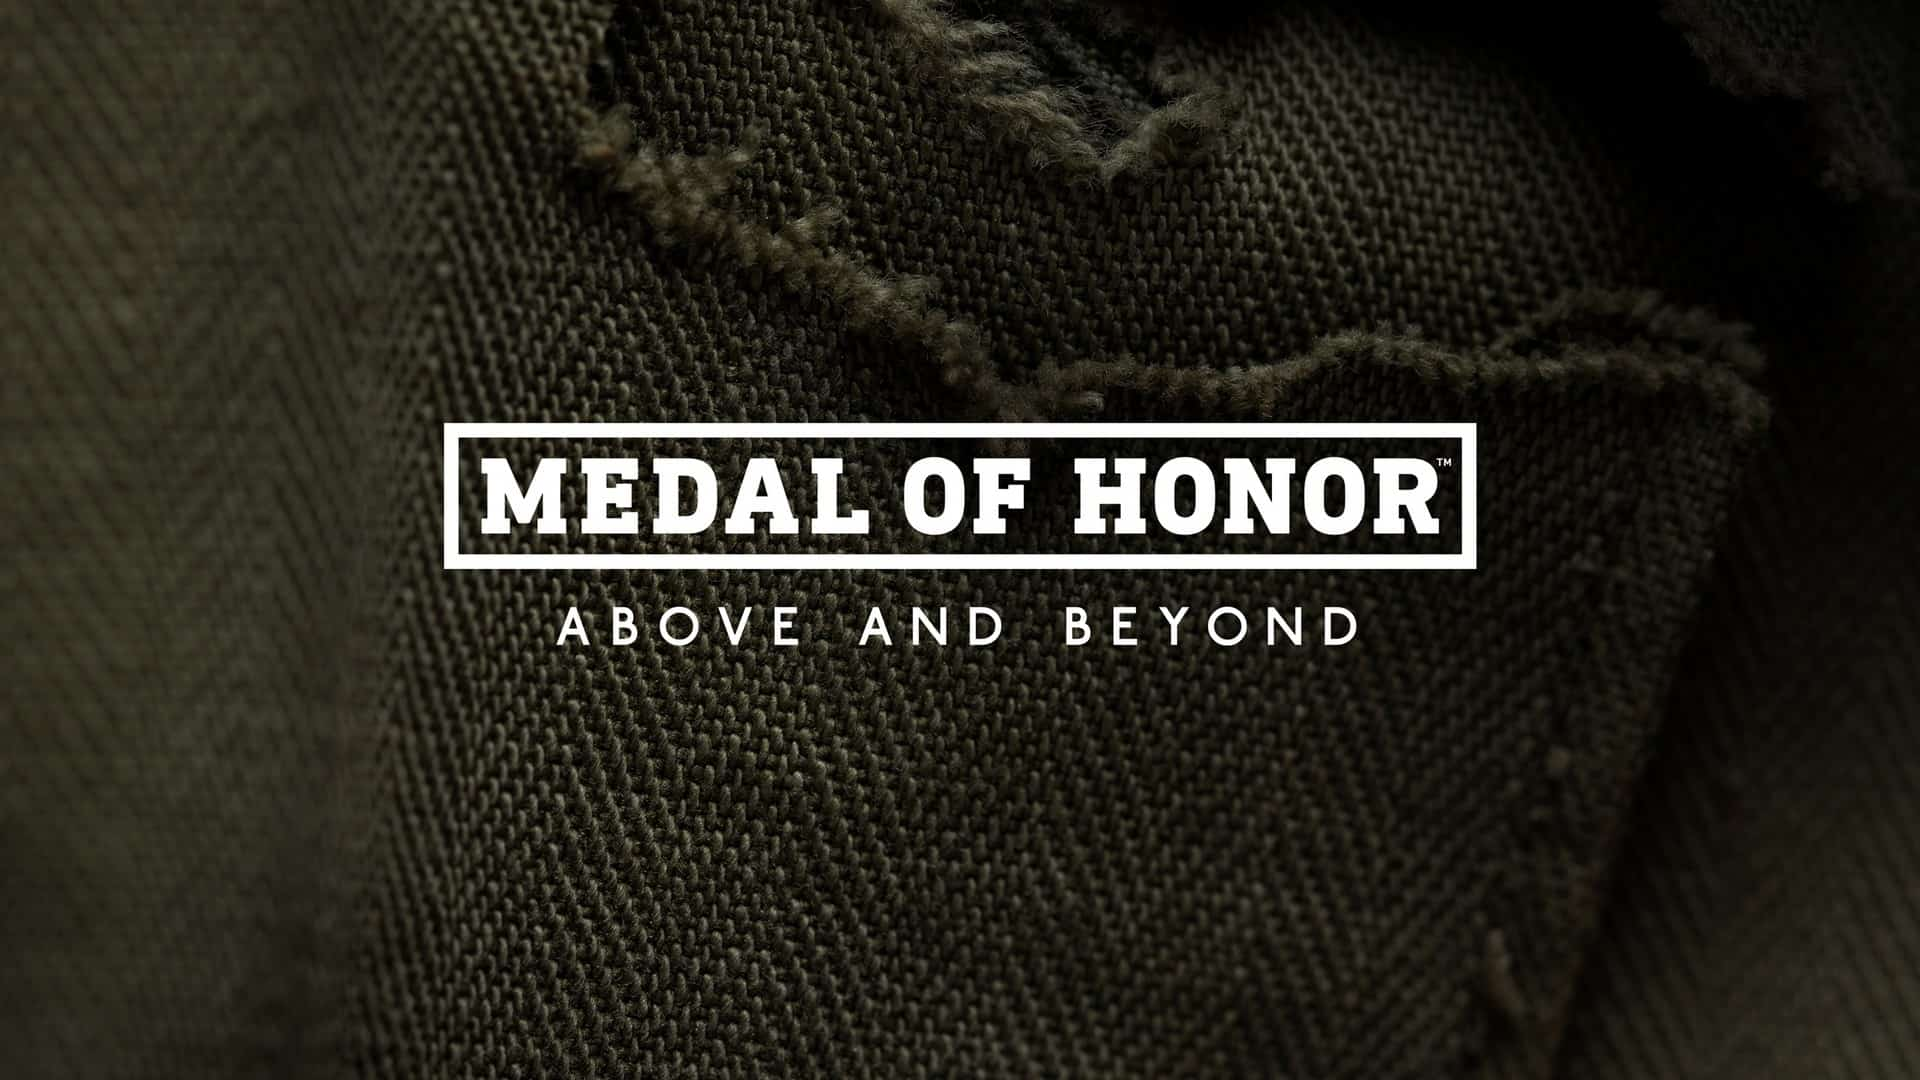 Medal Of Honor: Above And Beyond, Coming Exclusively For VR On Oculus Rift